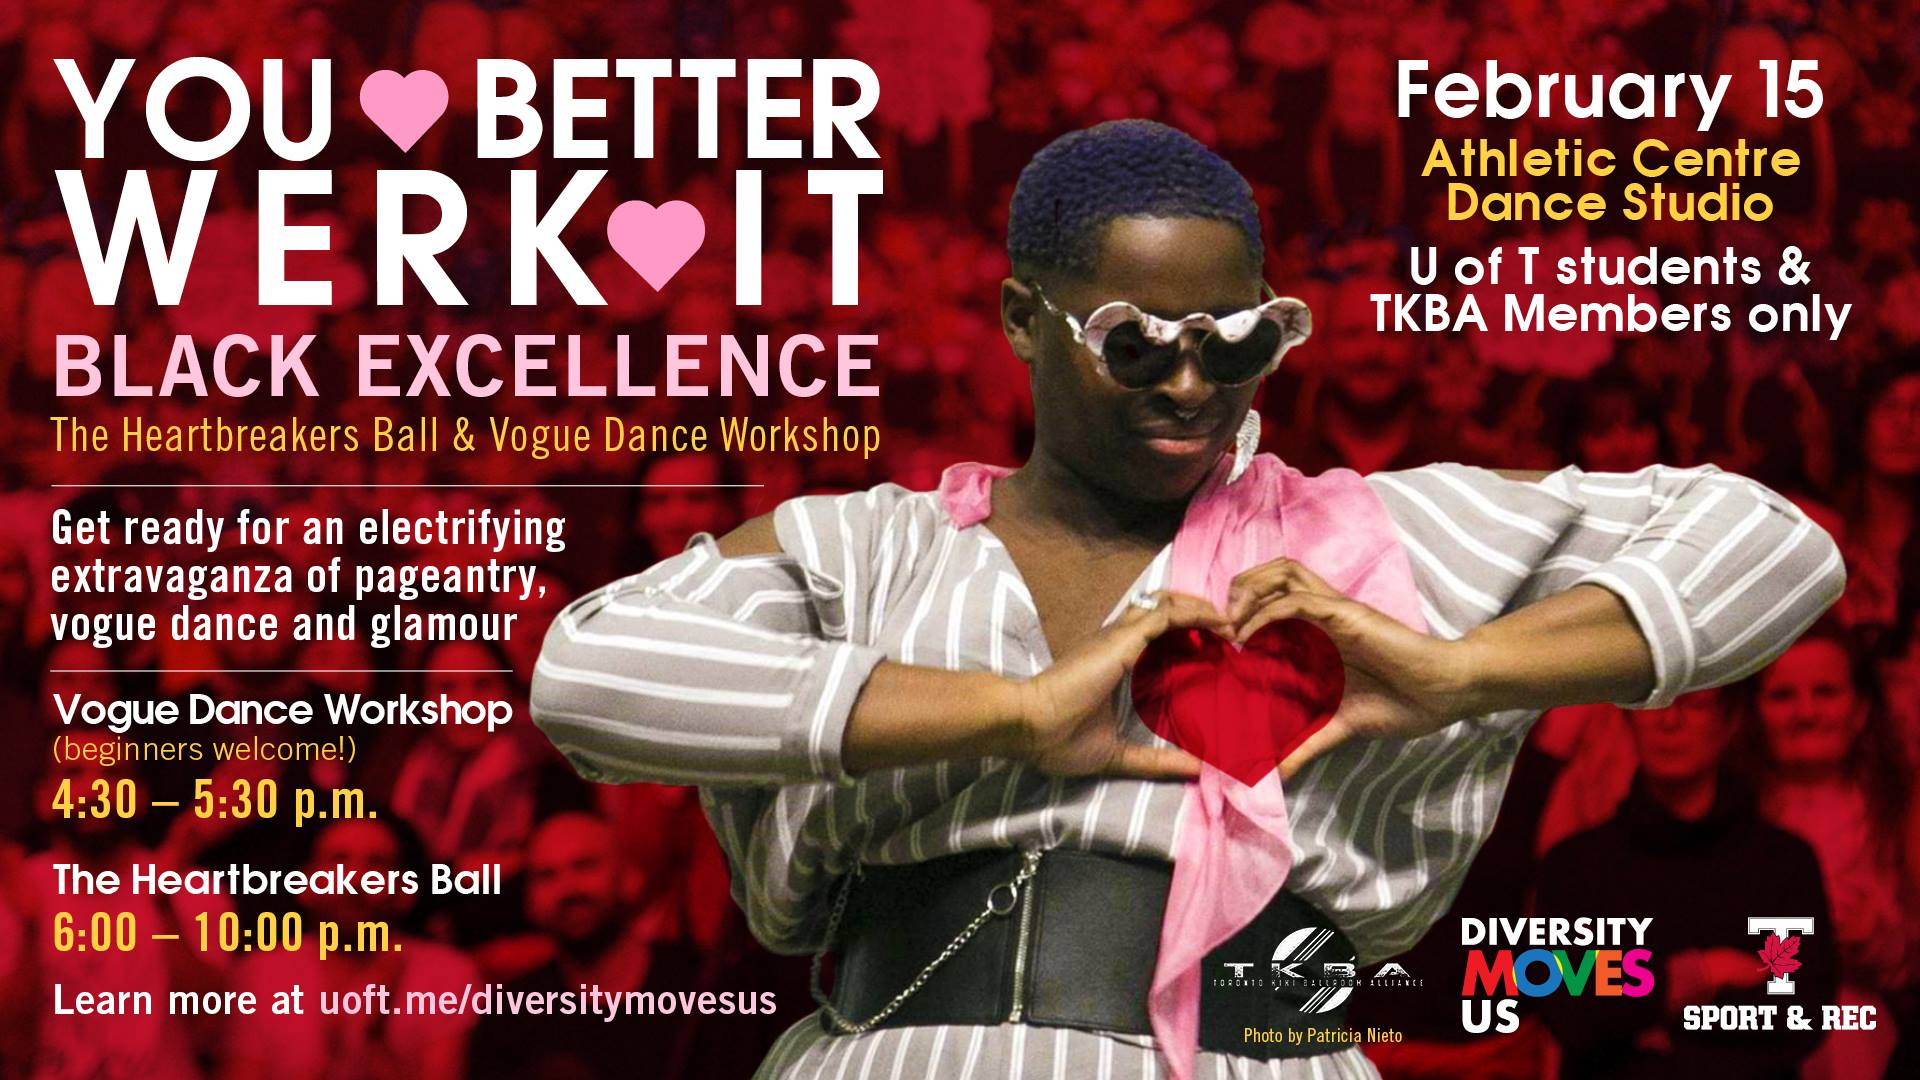 Black-Excellence-The-Heartbreakers-Ball&Vogue-Dance-Class